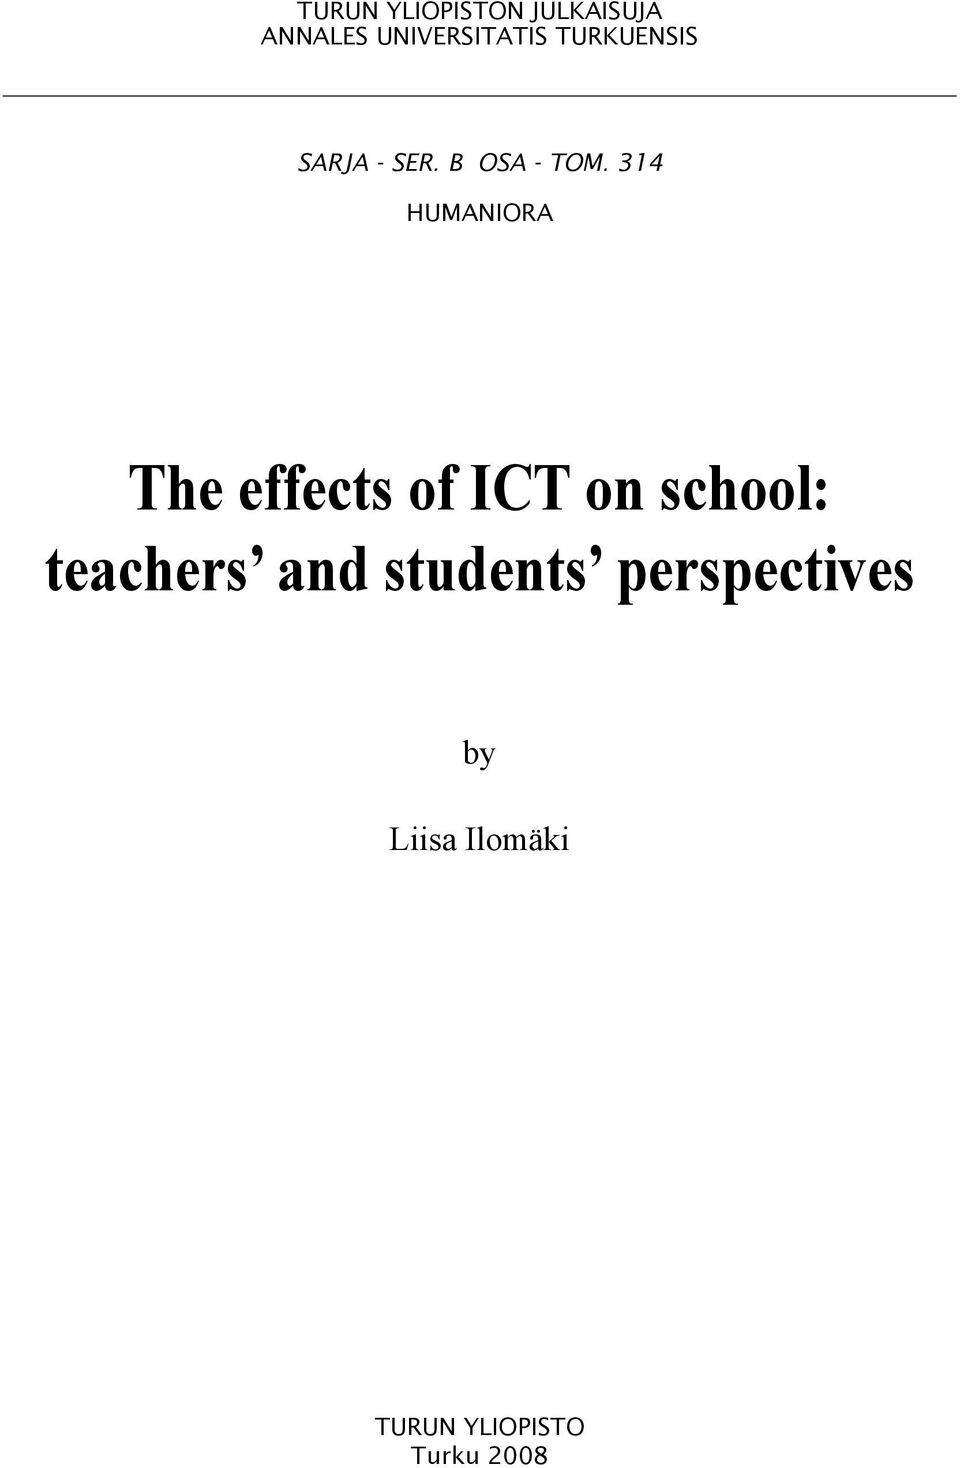 314 HUMANIORA The effects of ICT on school: teachers